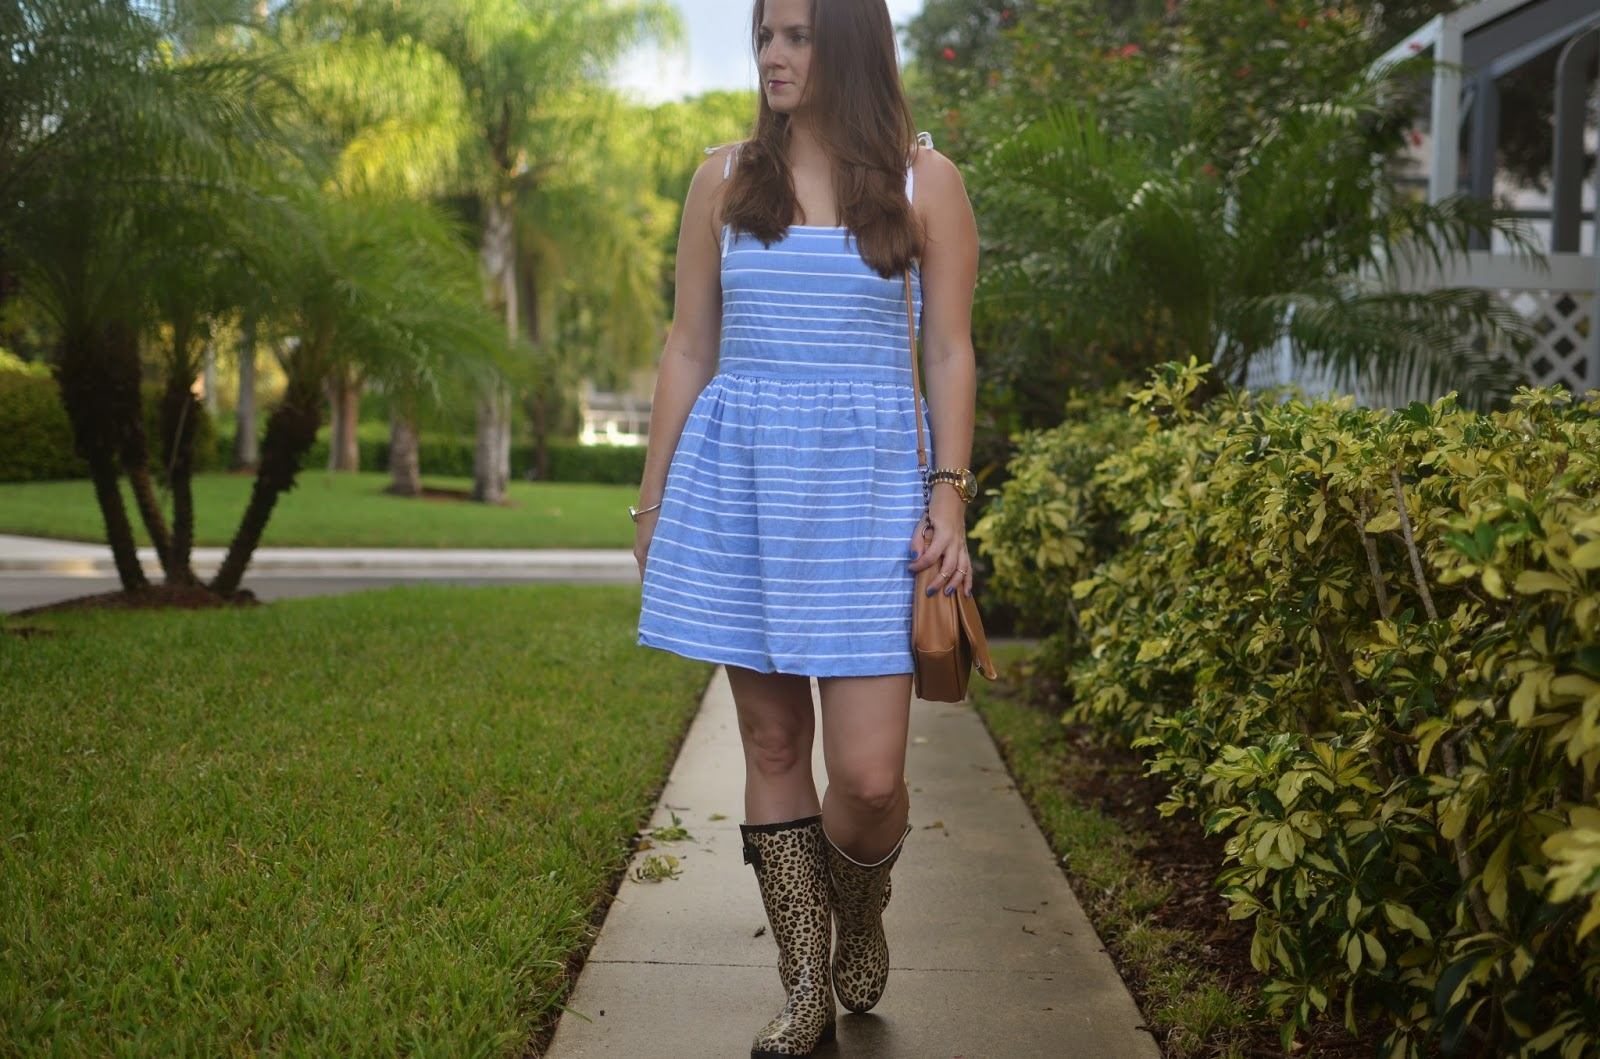 Stripped dress - rain boots - #poshfind - Emma & Sophia - Gap